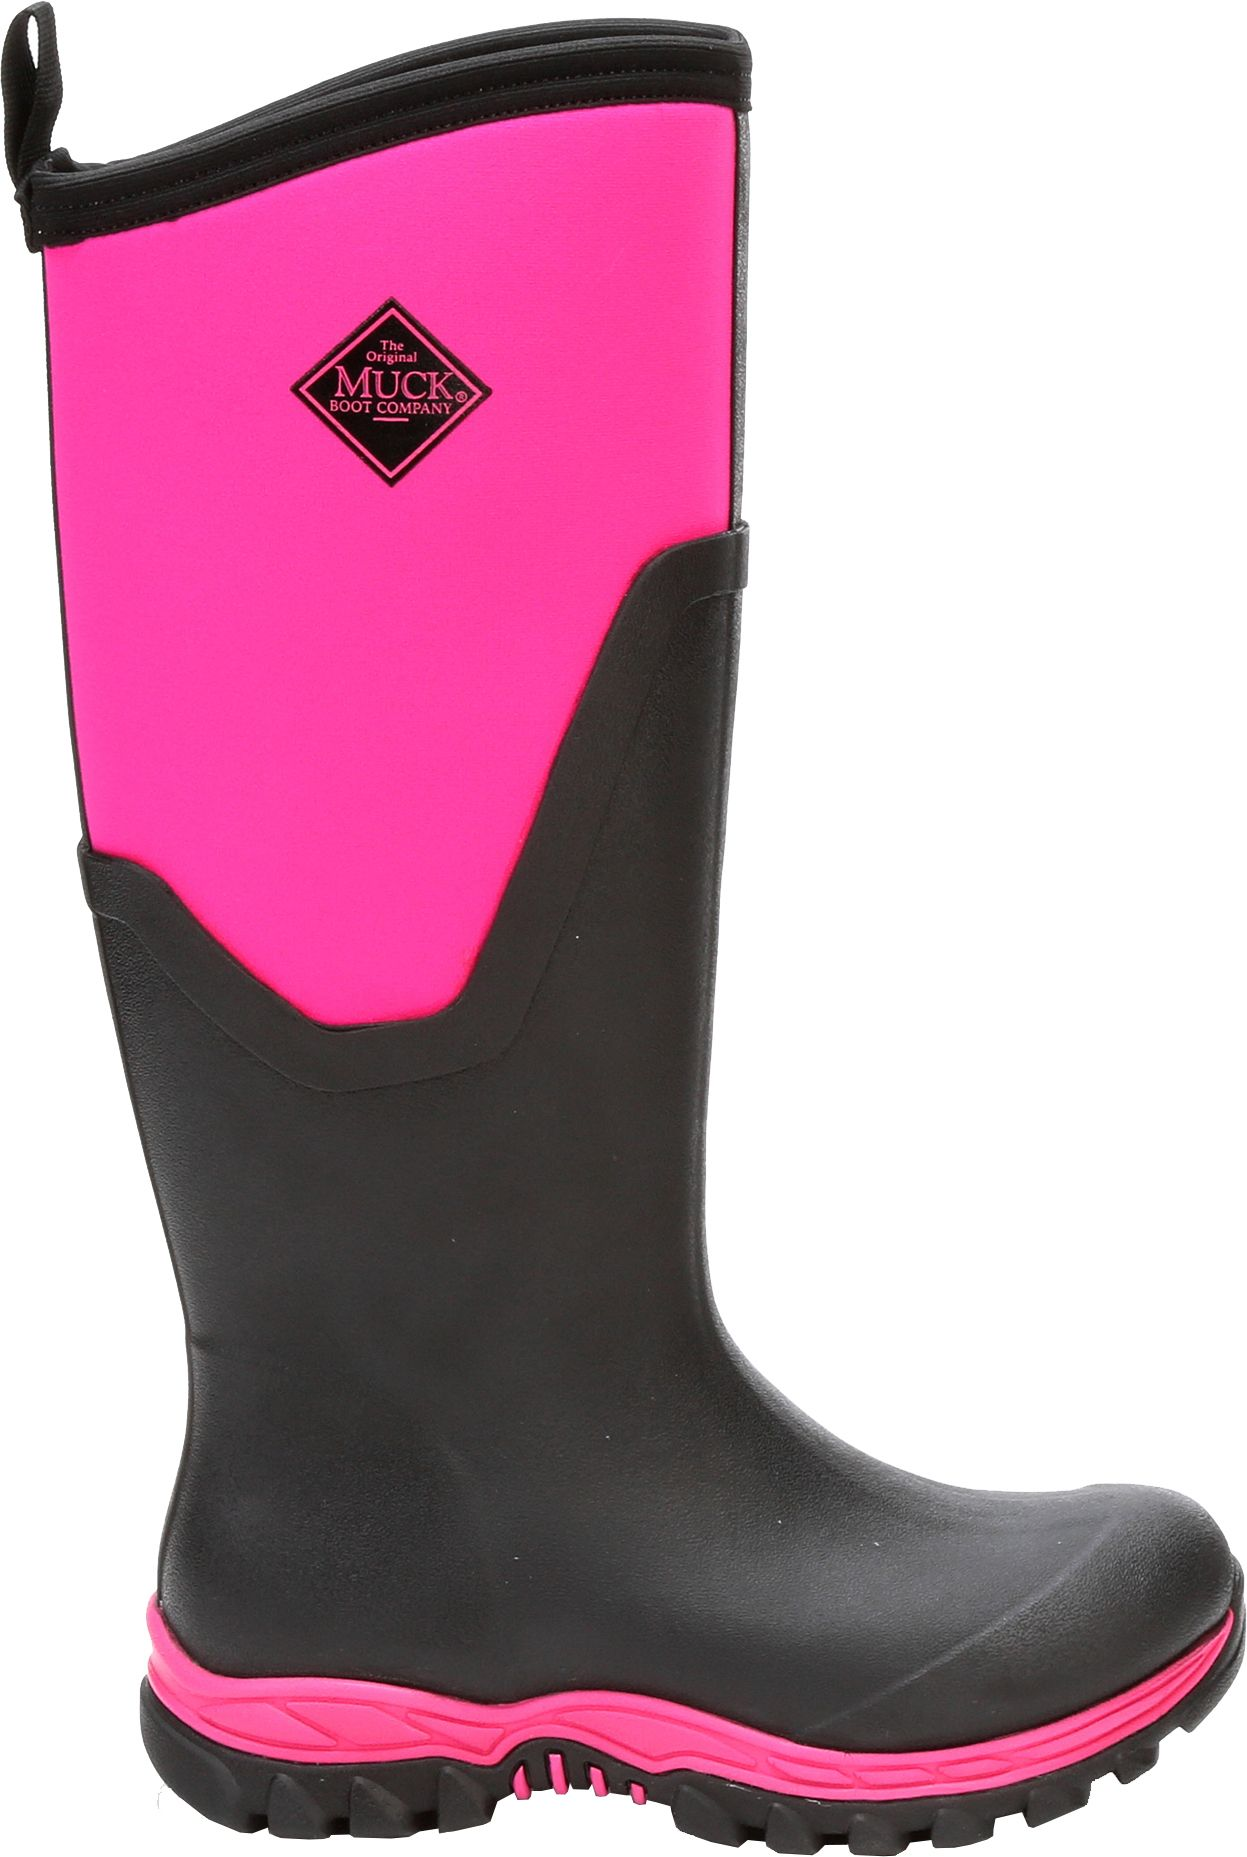 Muck Boot Women's Arctic Sport II Tall Winter Boots | DICK'S ...